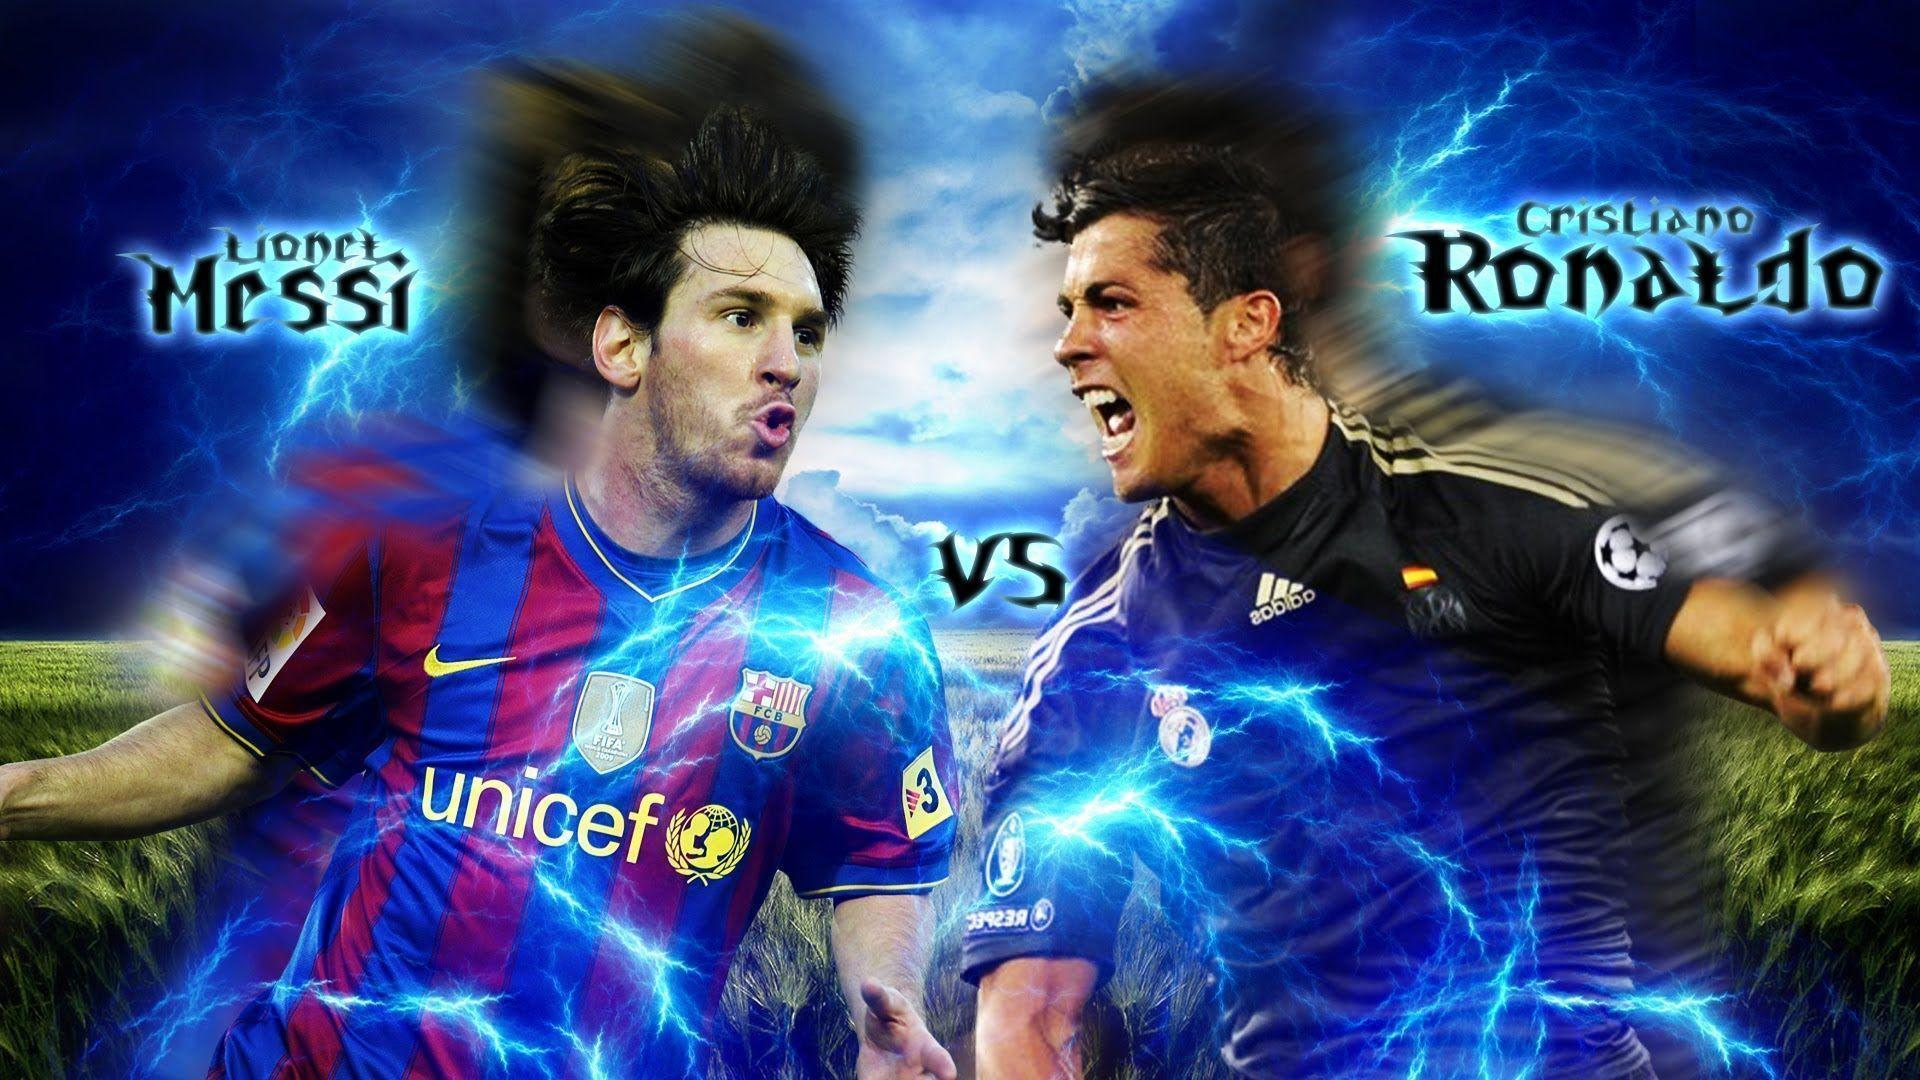 ronaldo vs messi Cristiano ronaldo vs lionel messi it's an argument as old as time itself, with  diehard fans of these two all-time greats throwing out stats and.